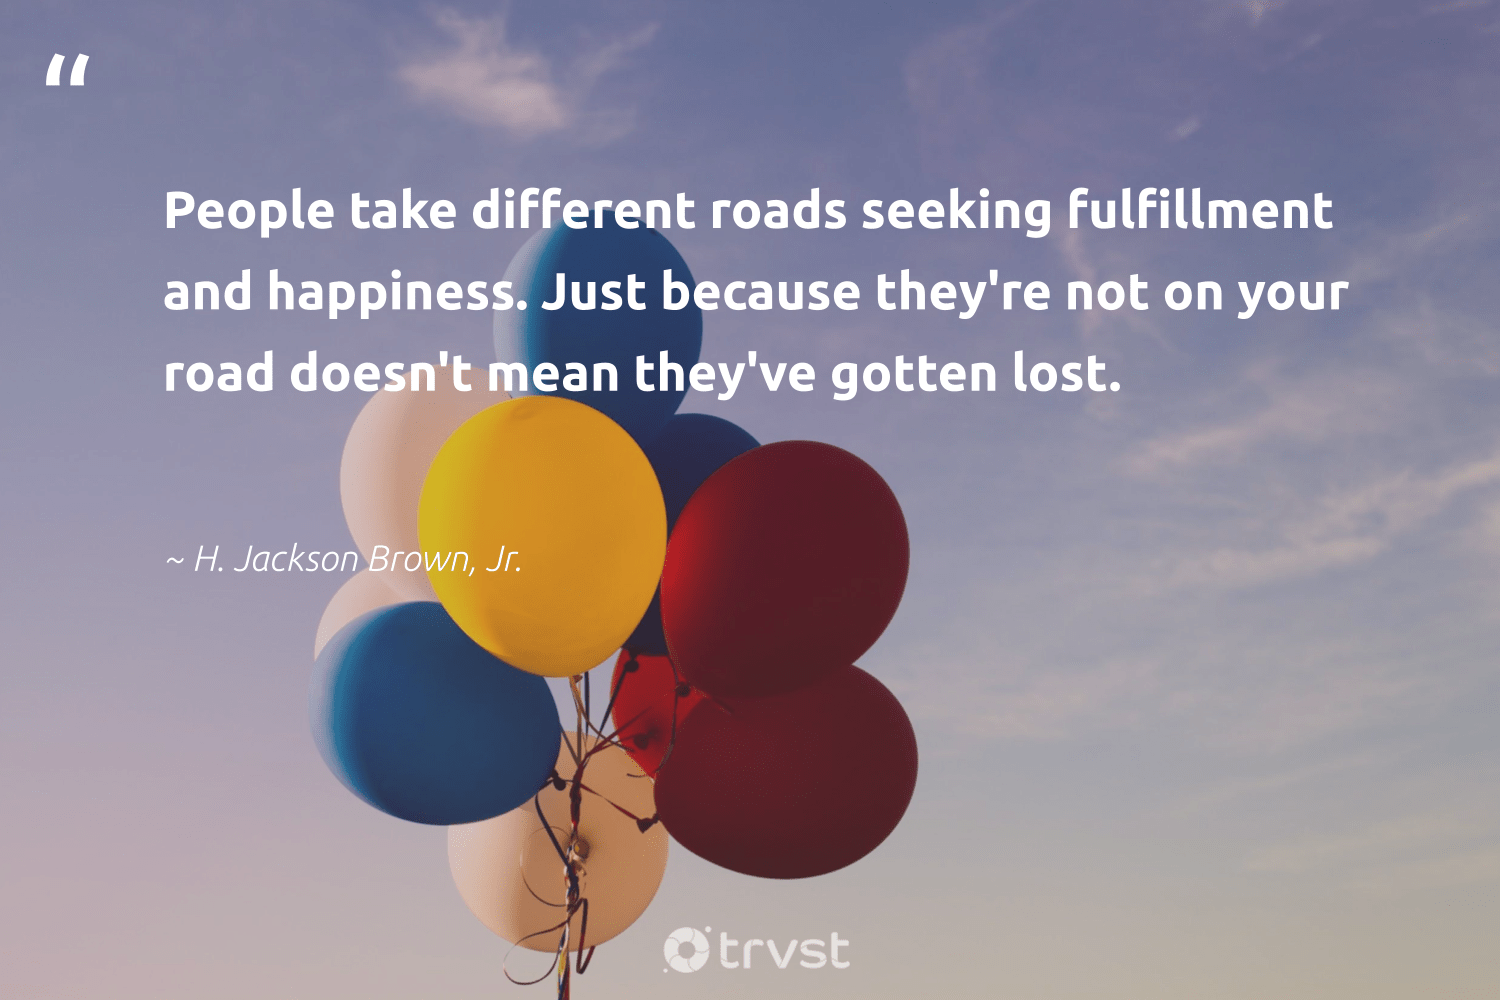 """""""People take different roads seeking fulfillment and happiness. Just because they're not on your road doesn't mean they've gotten lost.""""  - H. Jackson Brown, Jr. #trvst #quotes #happiness #nevergiveup #gogreen #togetherwecan #dosomething #mindset #socialimpact #begreat #ecoconscious #changemakers"""